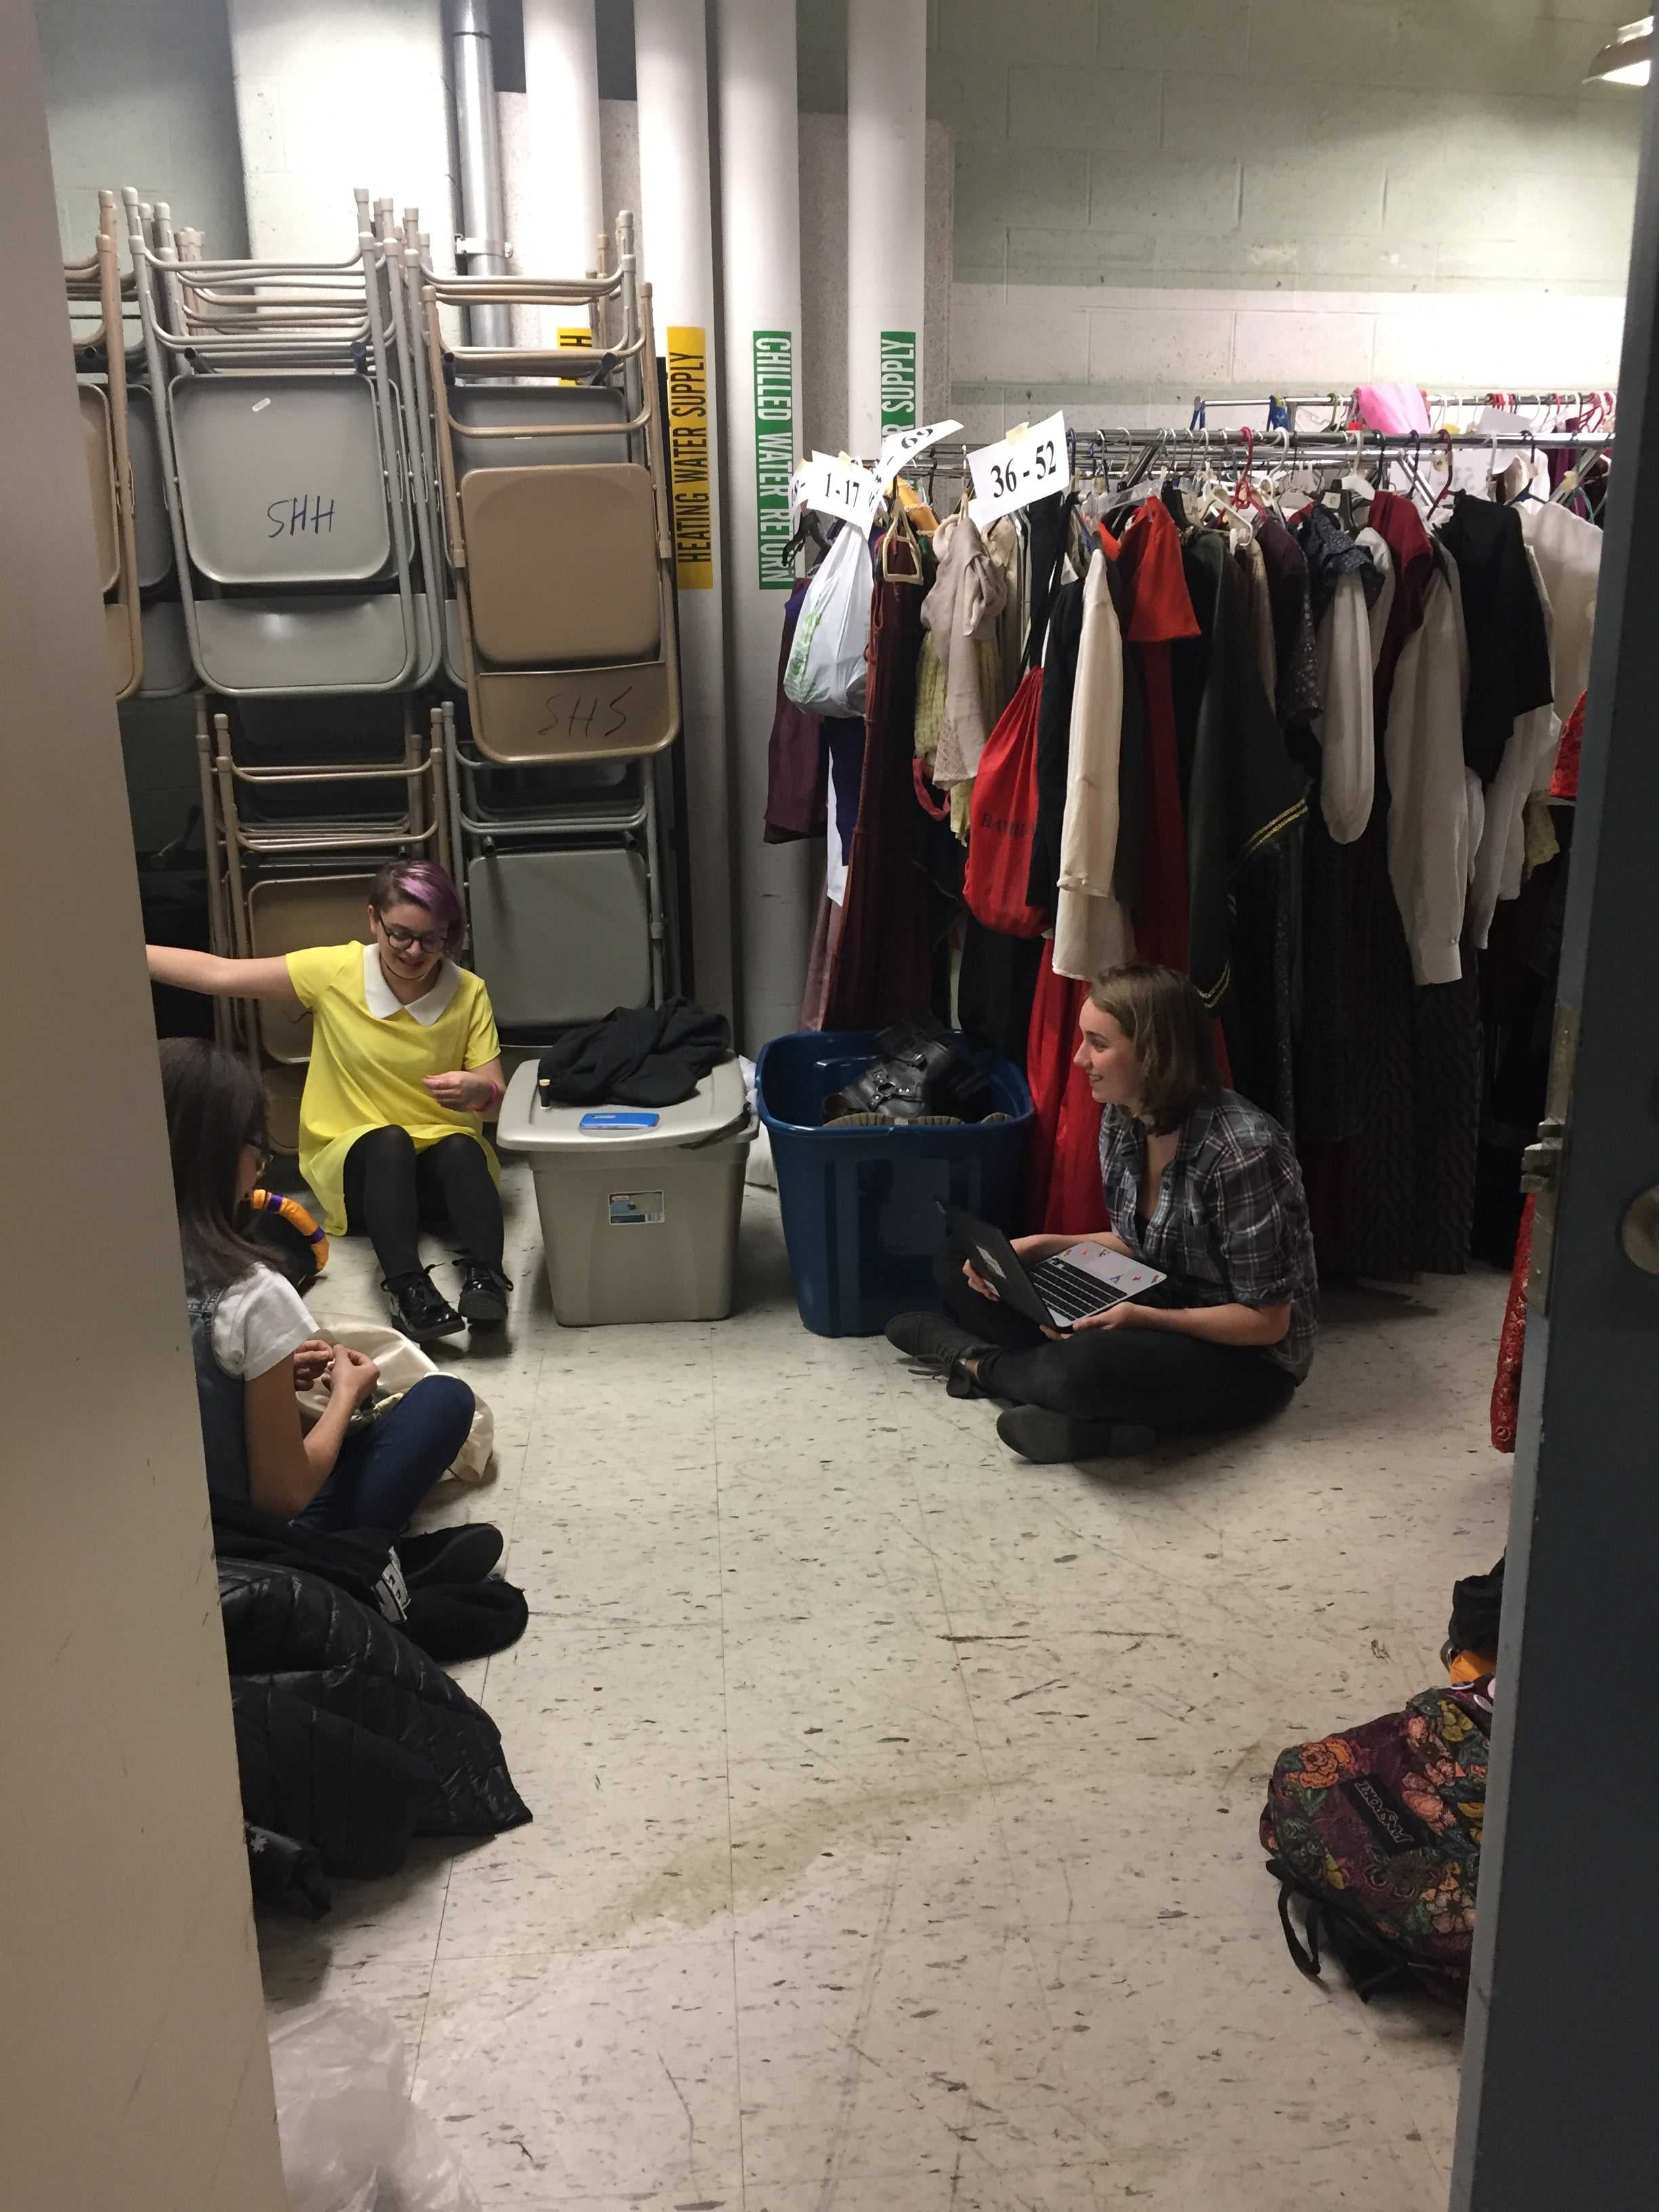 (left to right) with opening night fast approaching, juniors Nikki Moscony, Jessica Dillon, and Caroline Sessa are busy crafting medieval fashions